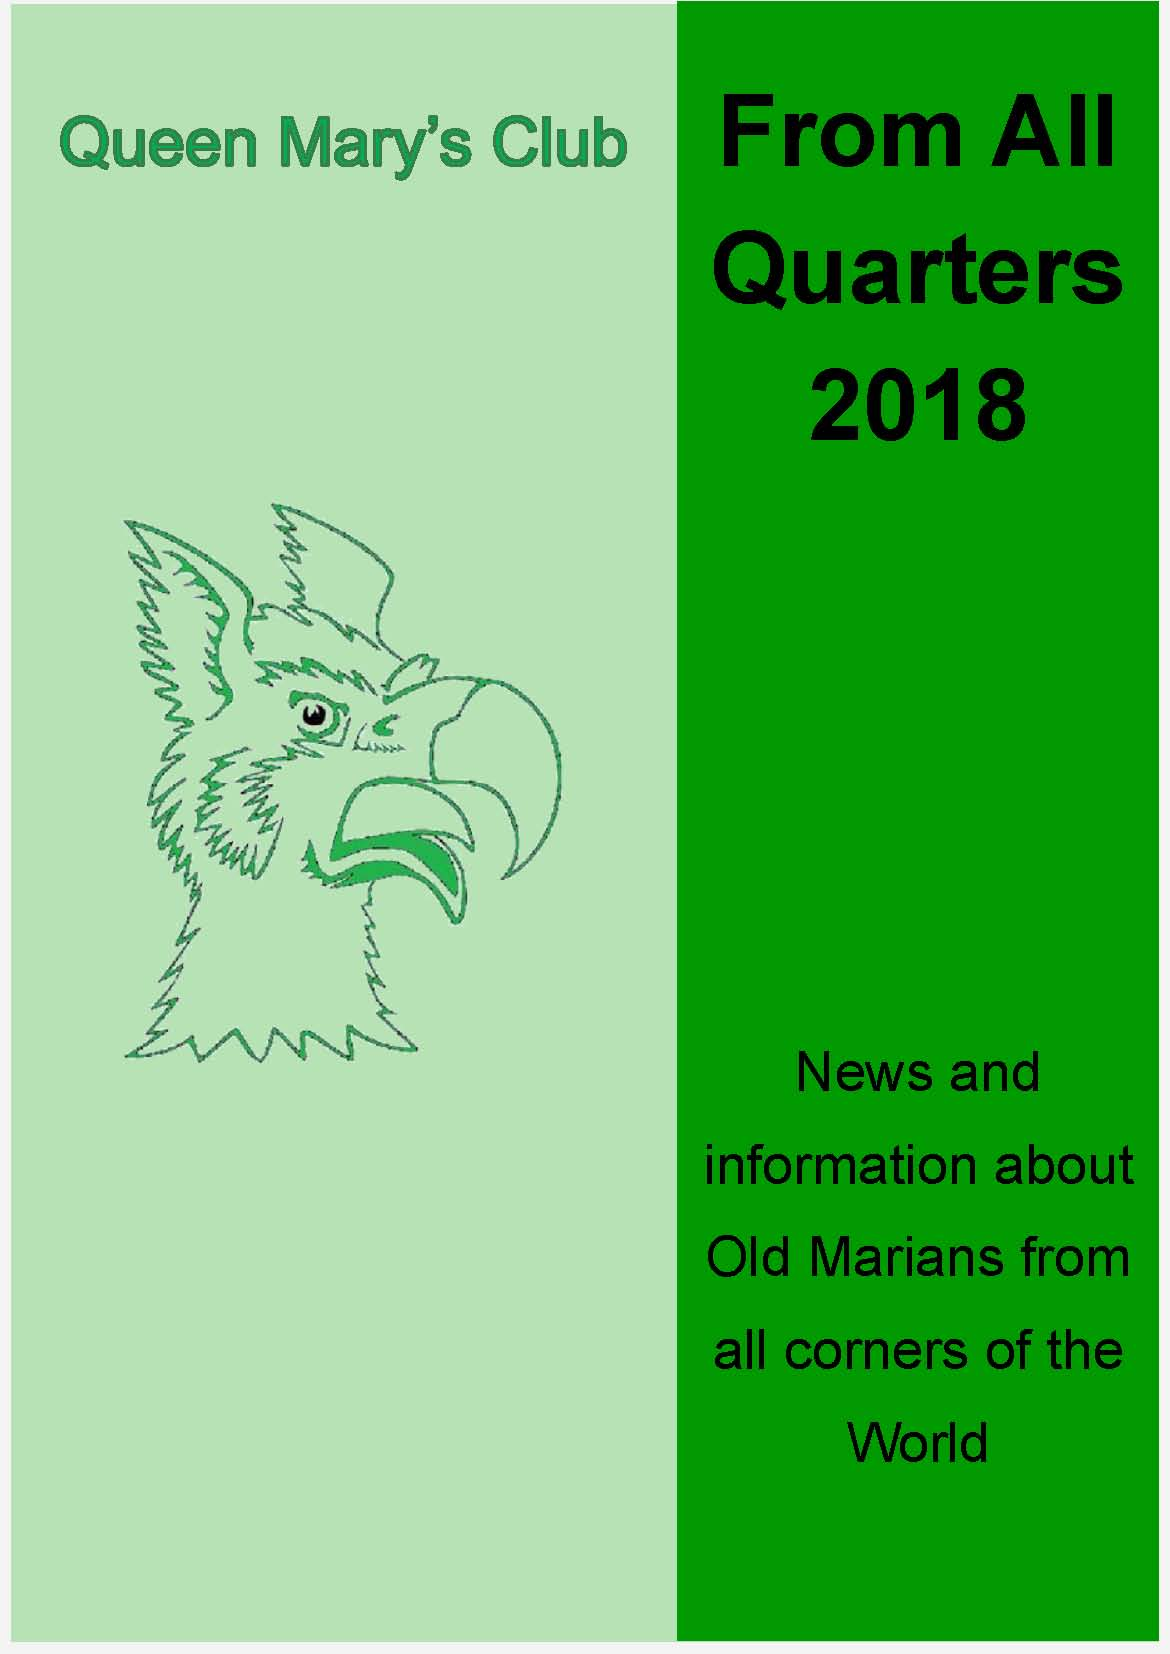 From All Quarters 2018